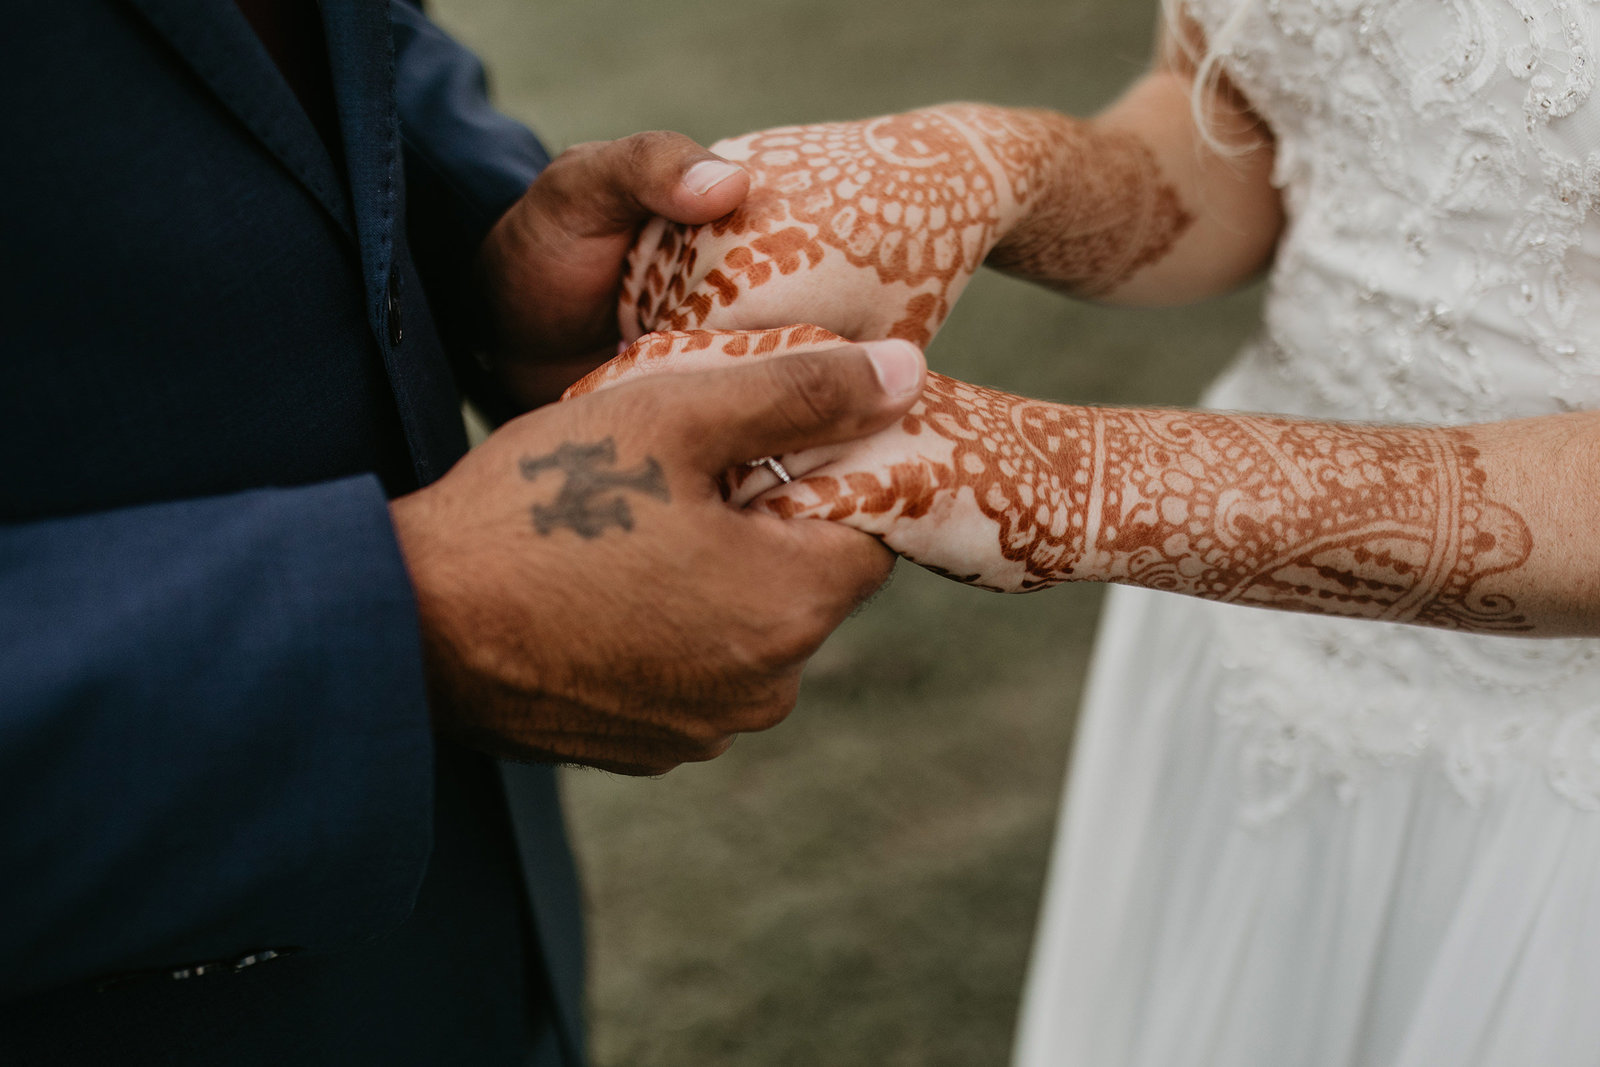 interracial couple indian american wedding with henna in dallas texas